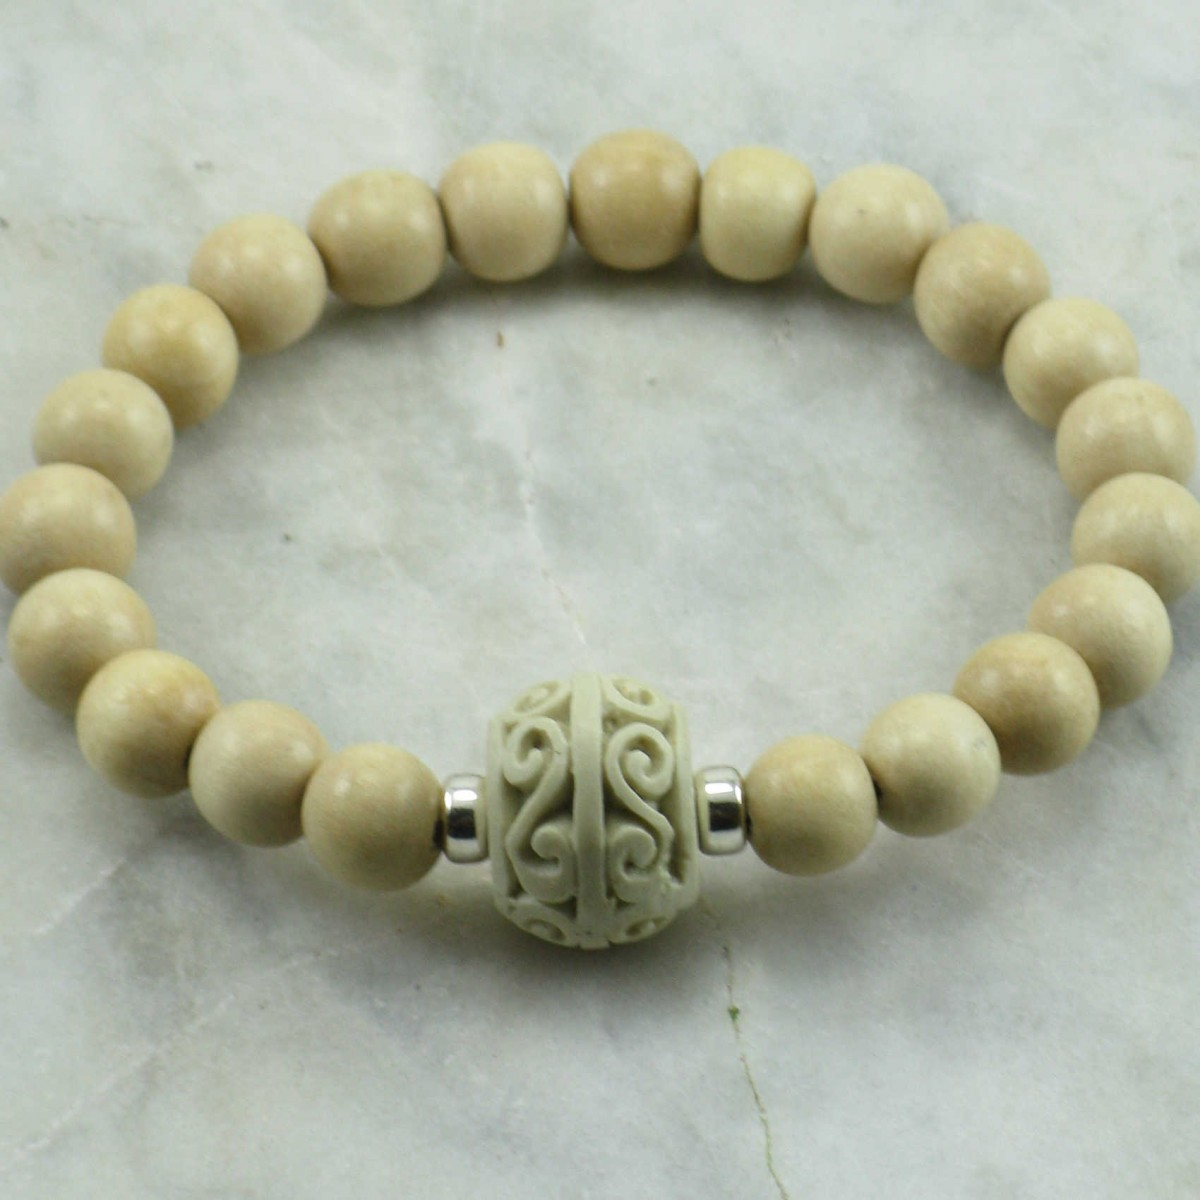 Peace_Mala_Bracelet_21_Wood _Mala_Beads_Buddhist_Bracelet